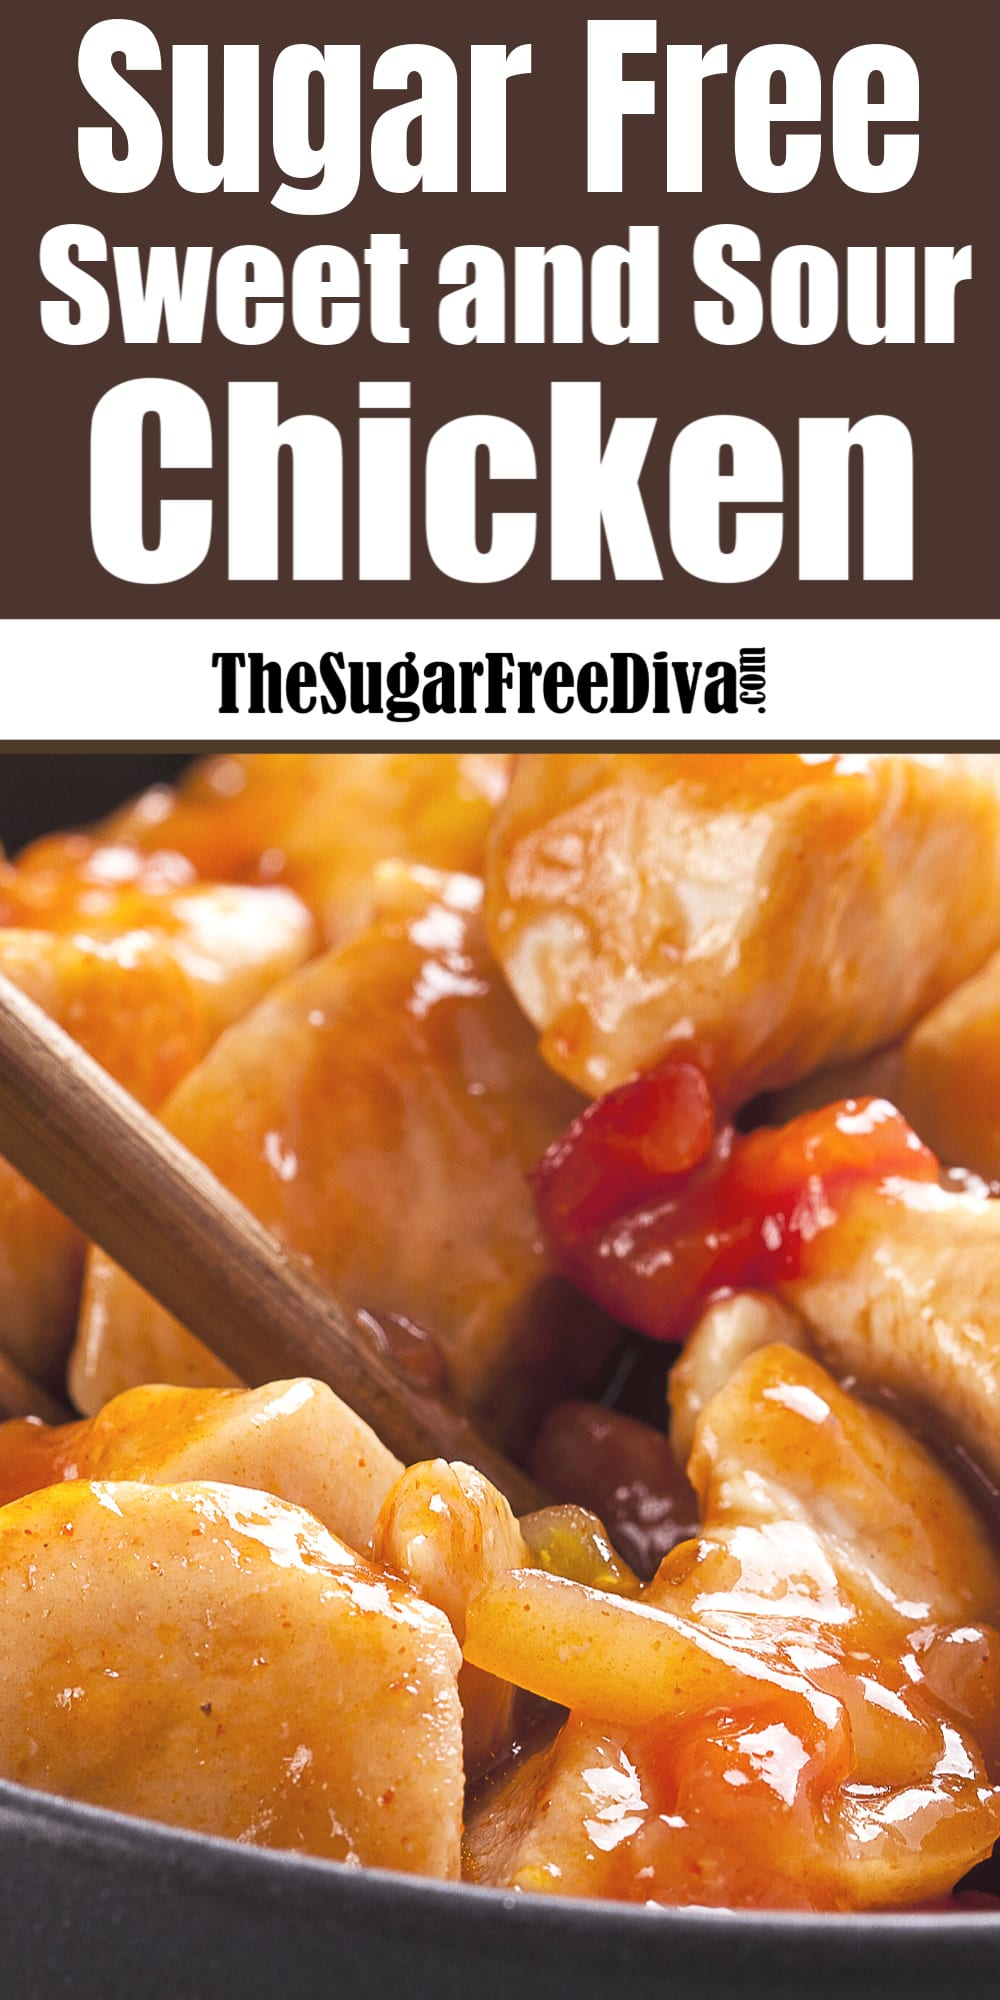 Sugar Free Sweet and Sour Chicken